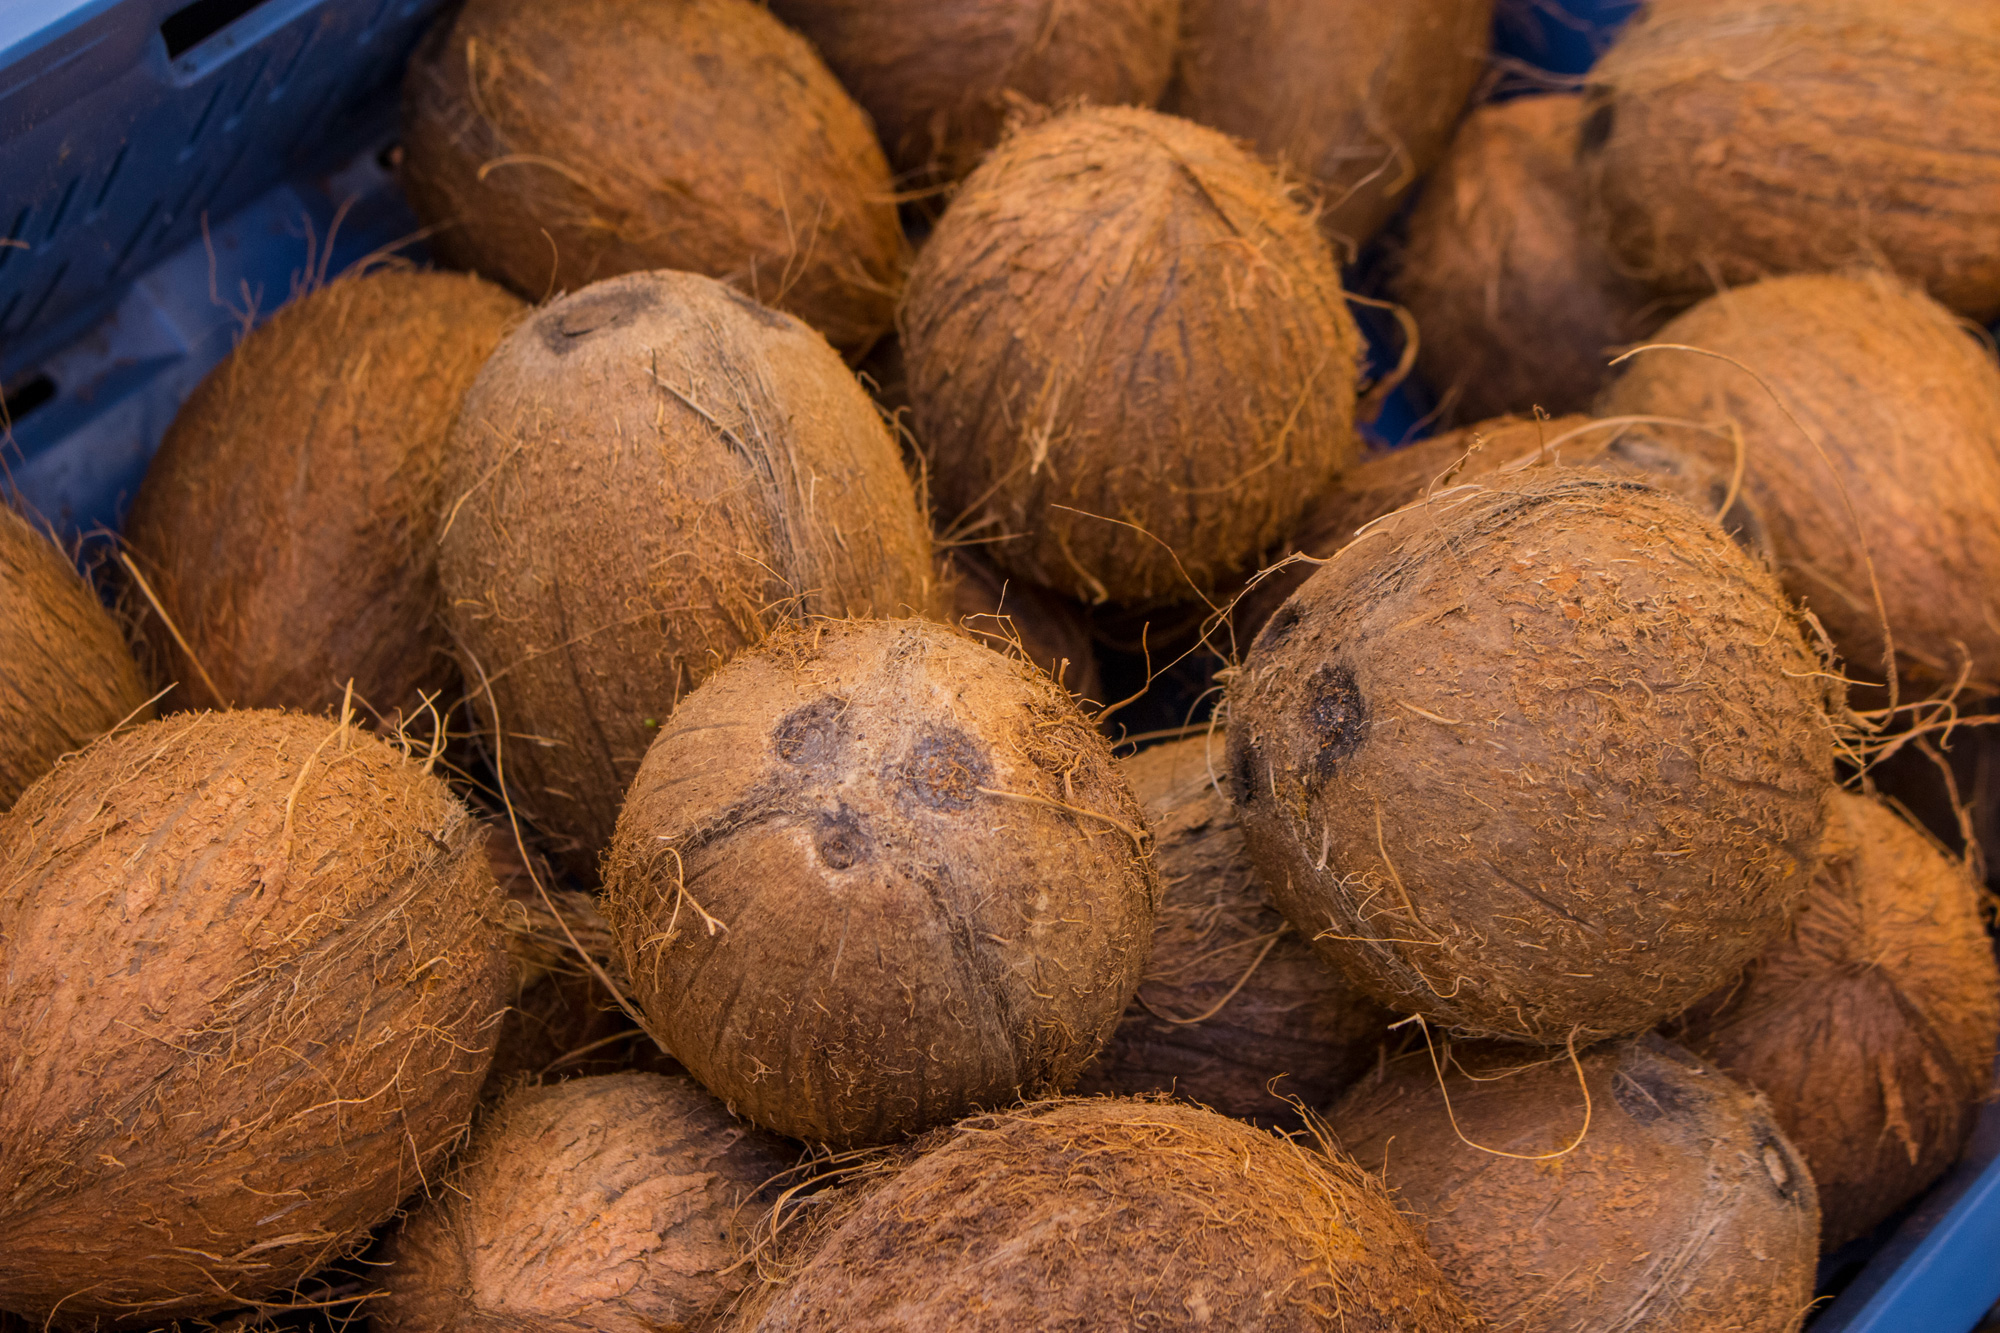 Coconuts that cost less than Rs 50 each in the market are selling for Rs 1,300 a piece online